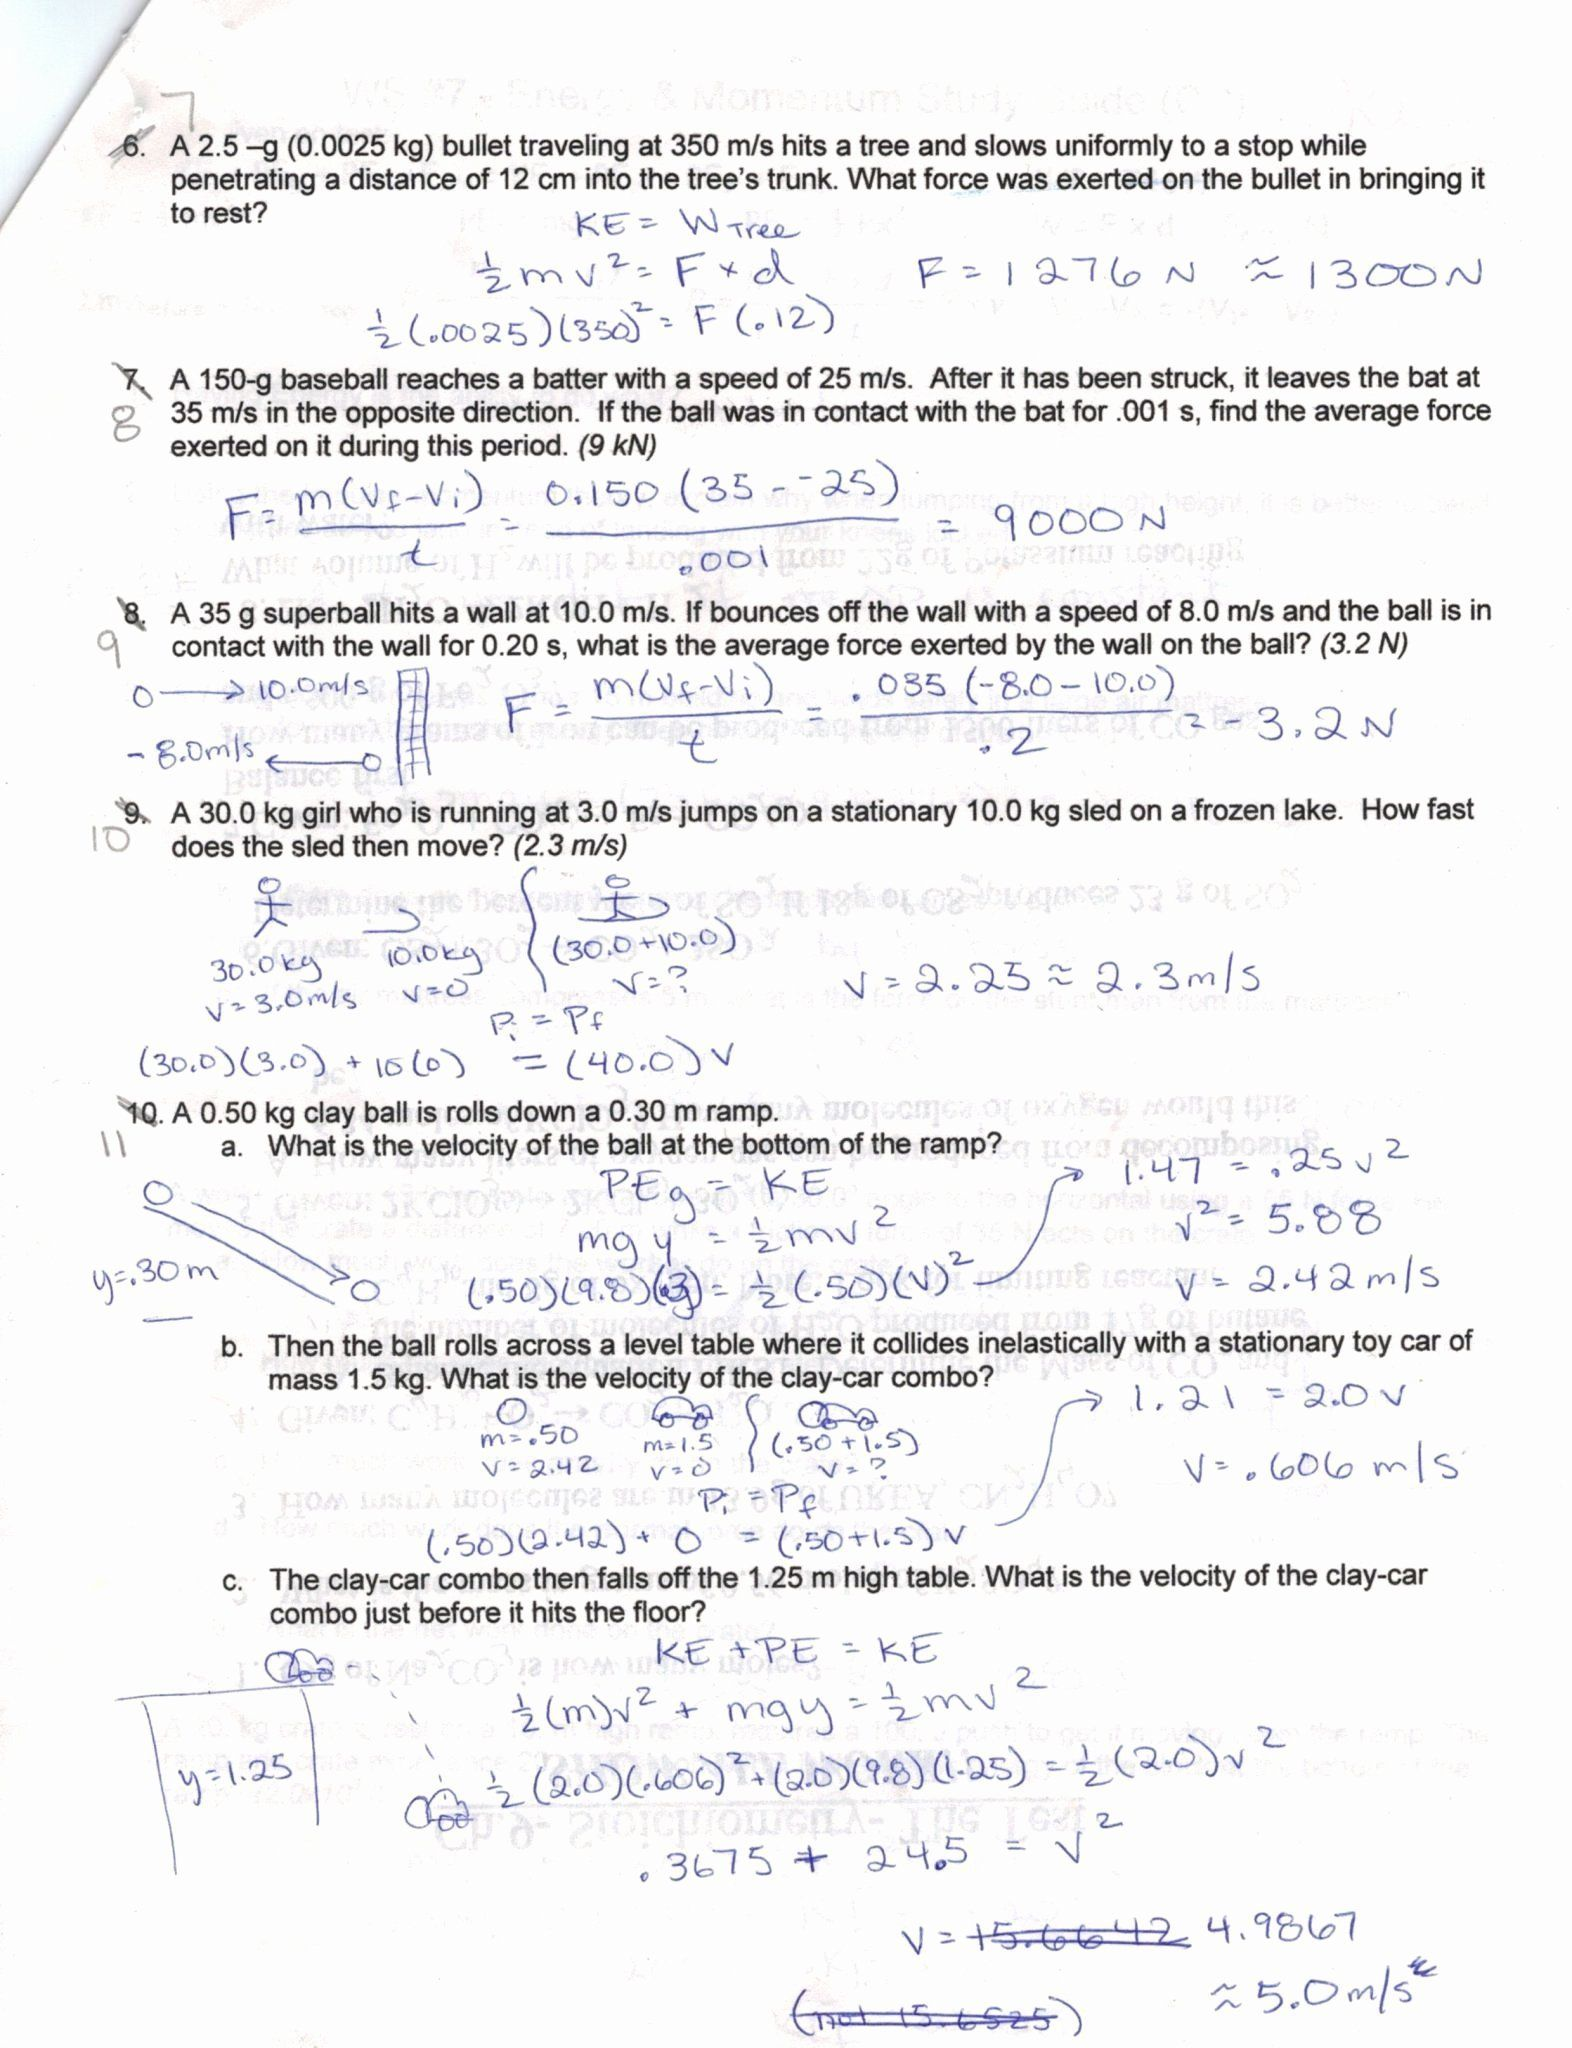 Acceleration Worksheet With Answers Inspirational